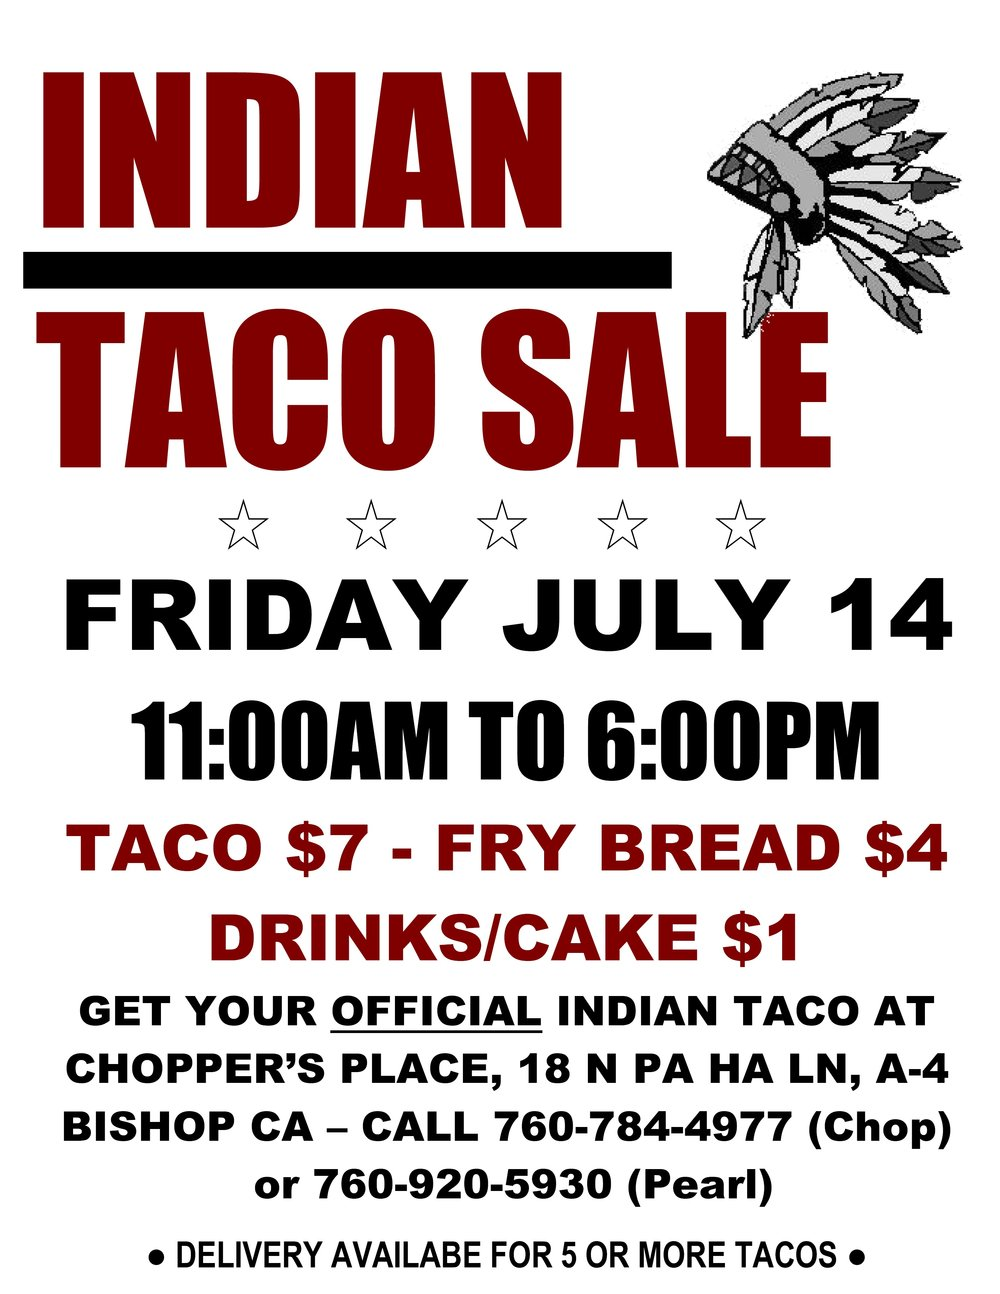 Indian Taco Sale Flyer July  2017.jpg